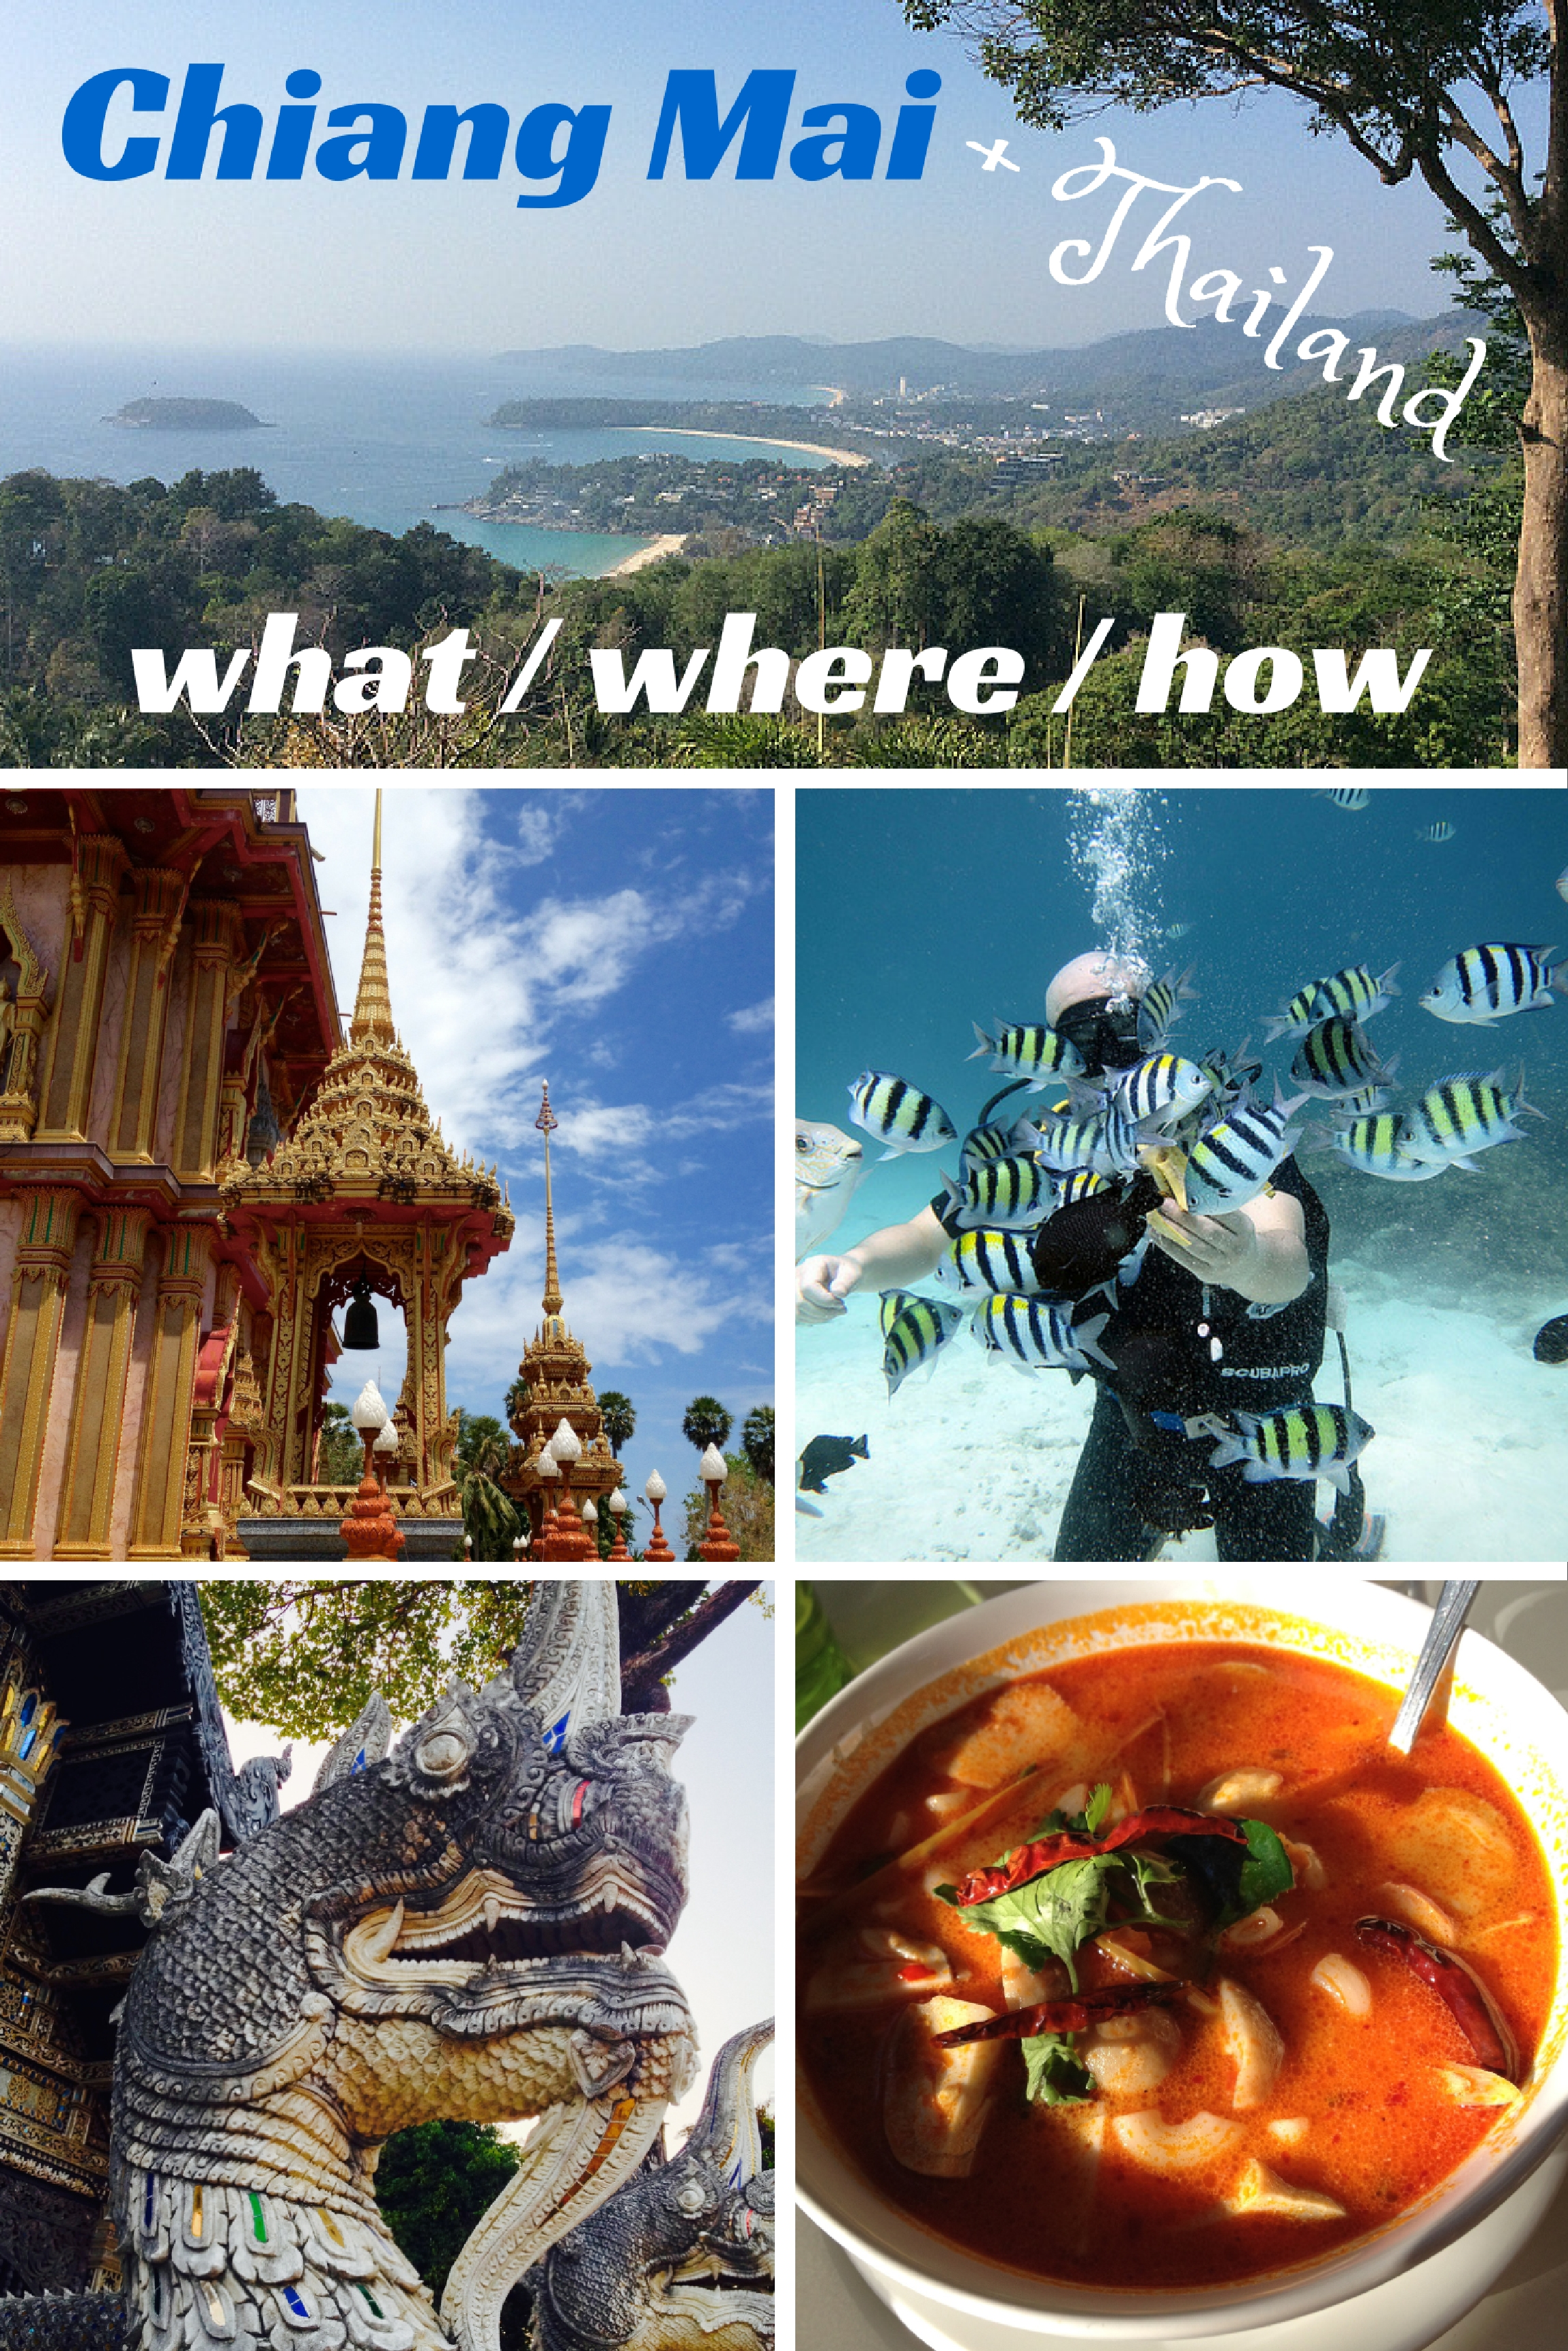 Chiang Mai and Thailand online travel resources